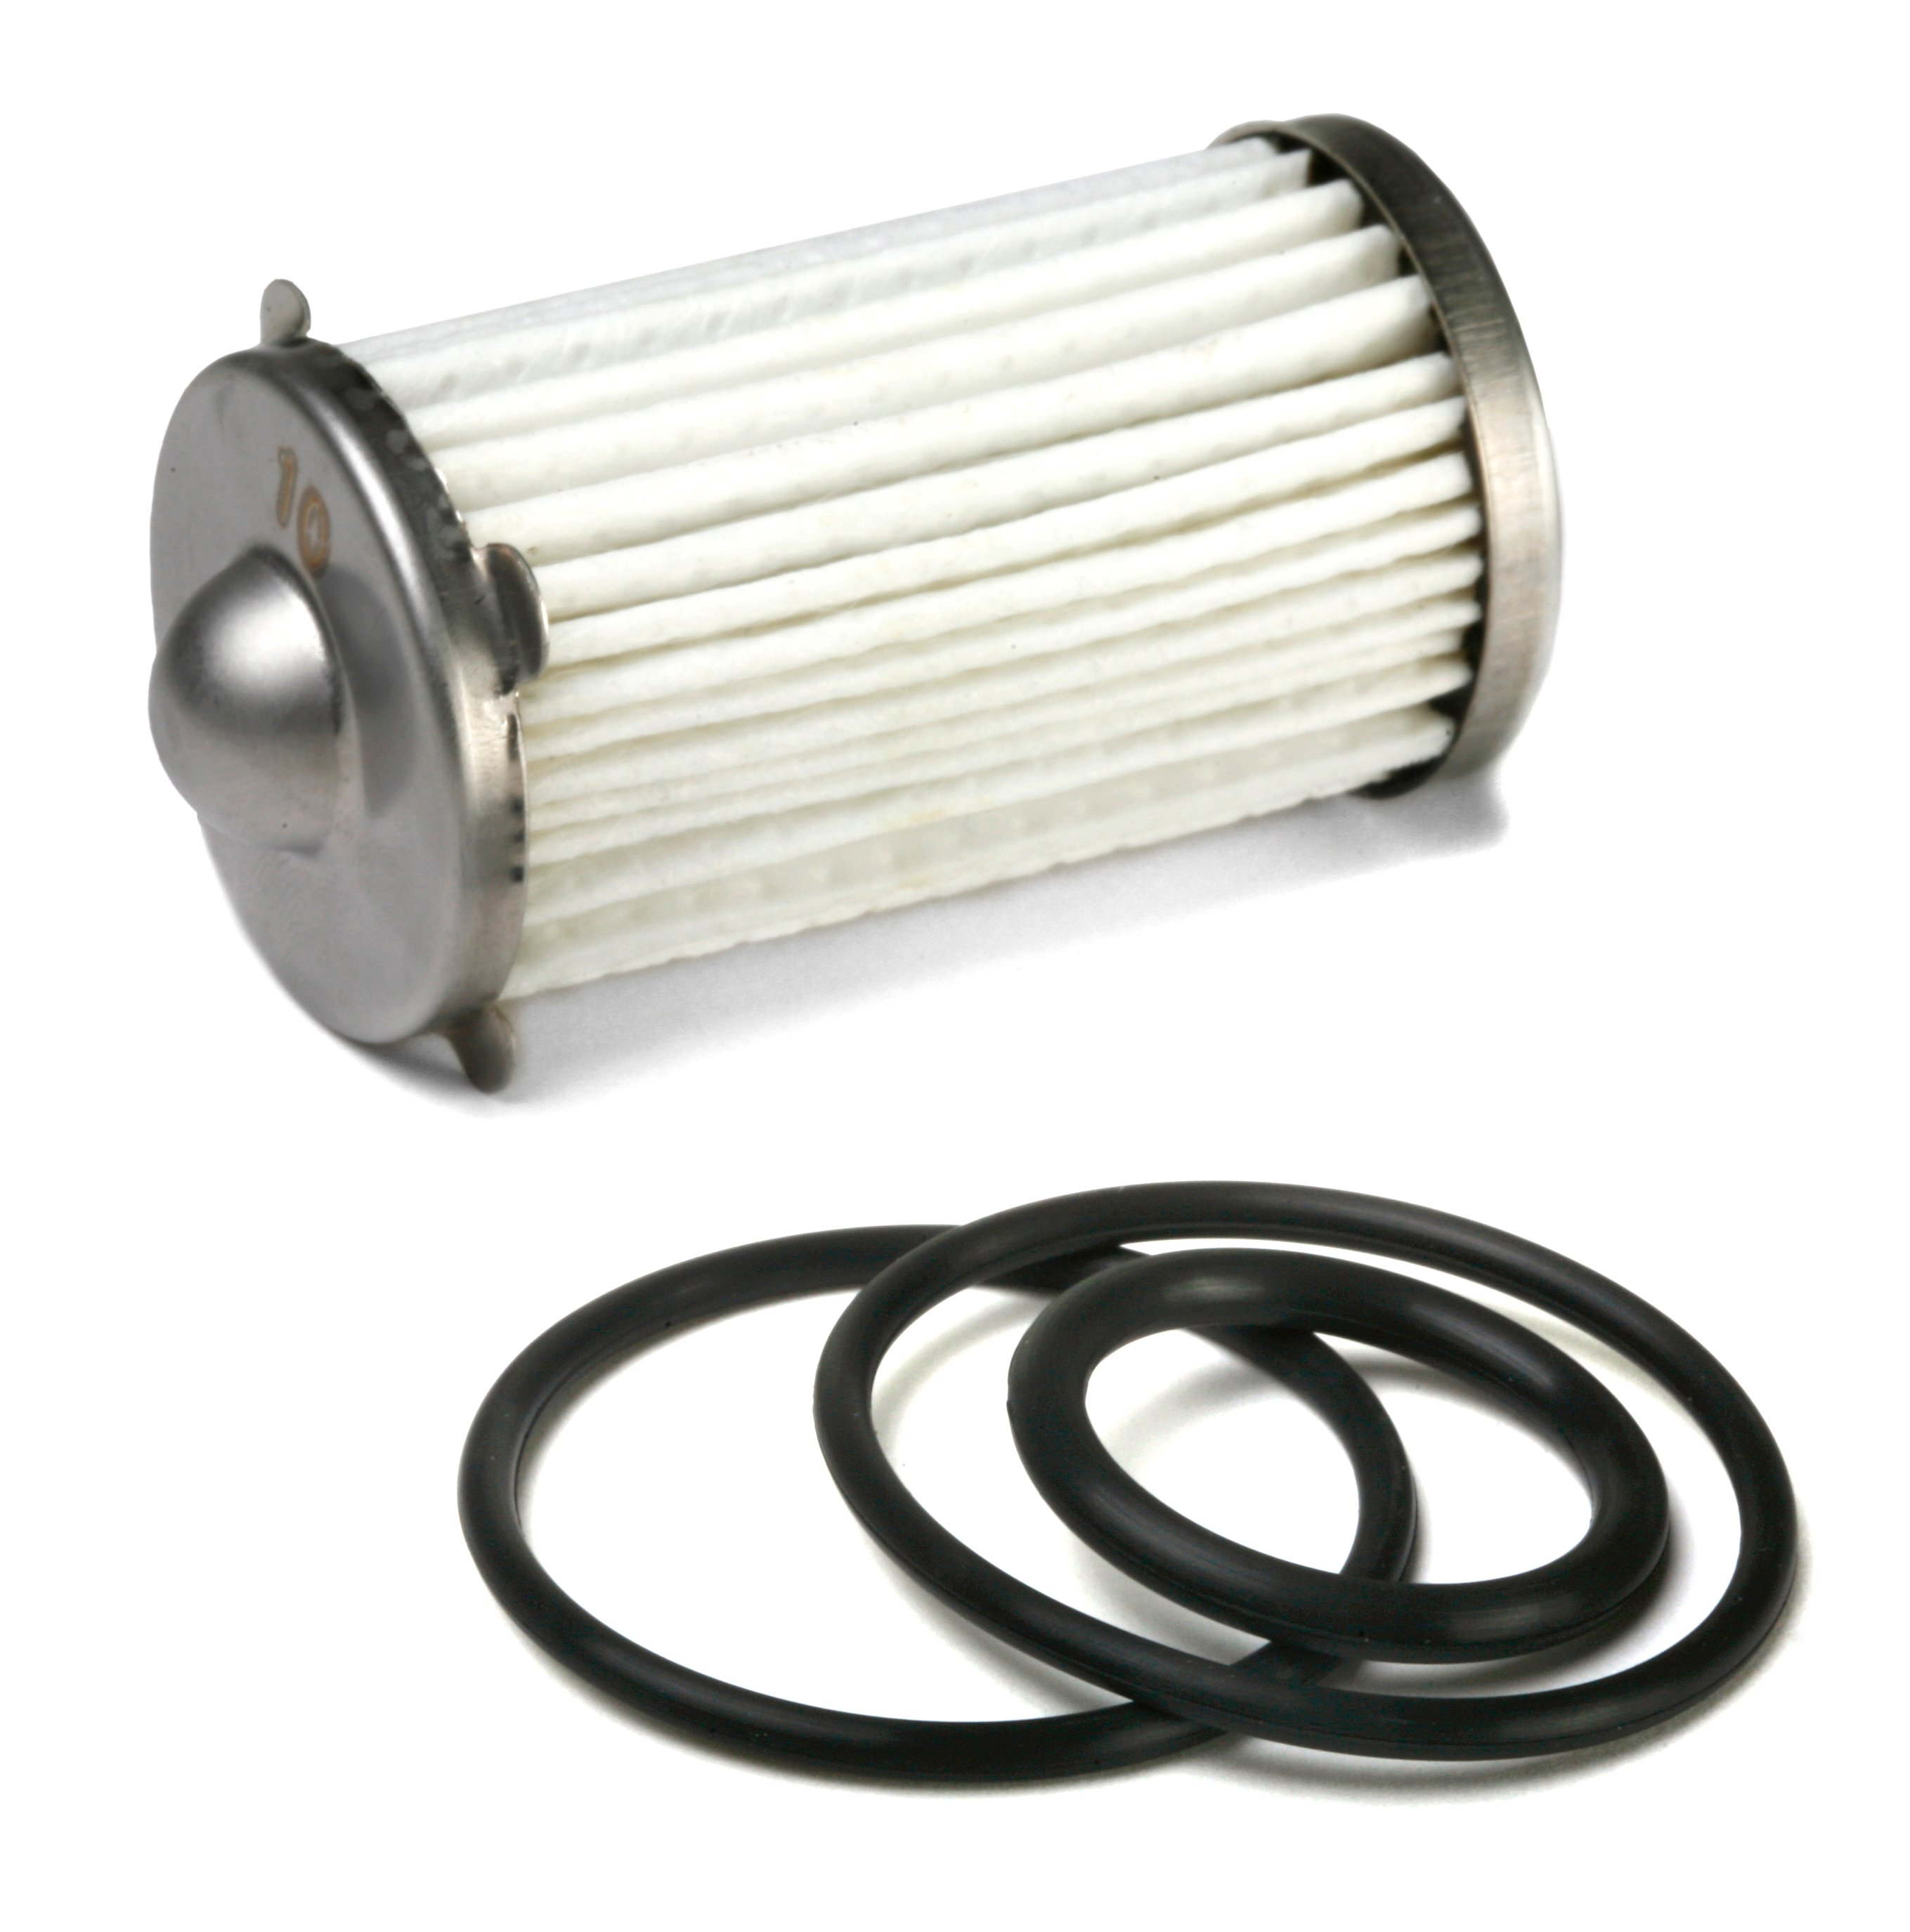 162-558 - Fuel Filter Element and O-ring Kit Image